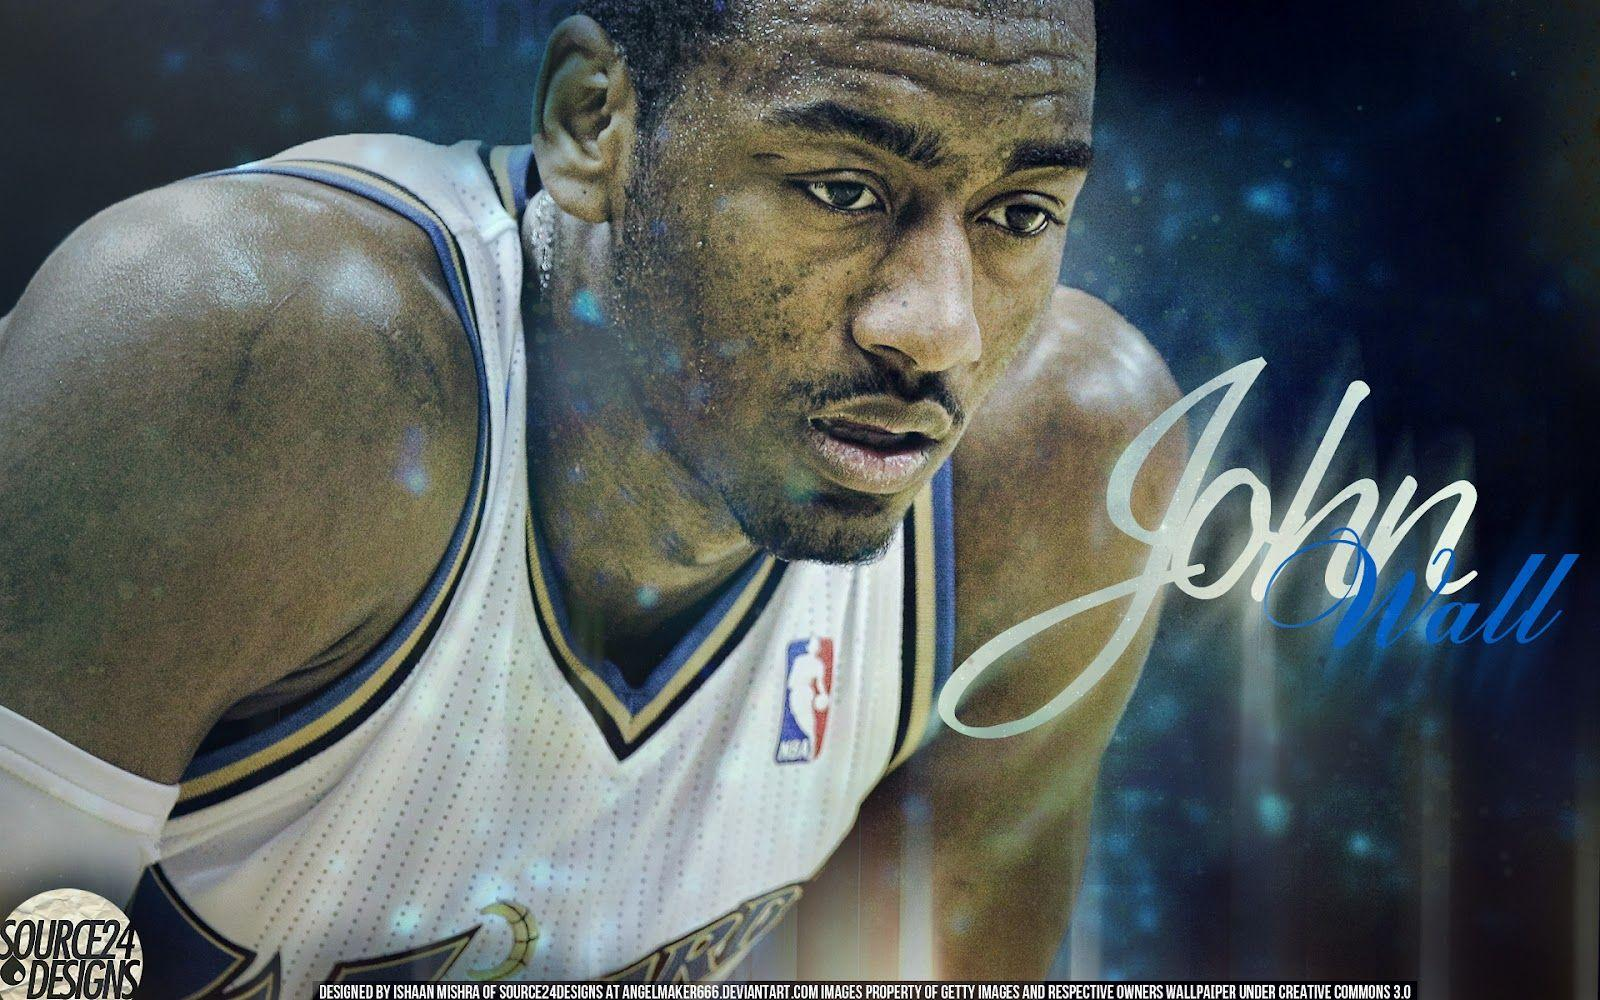 John Wall Washington Wizards Wallpapers | NBA Wallpapers